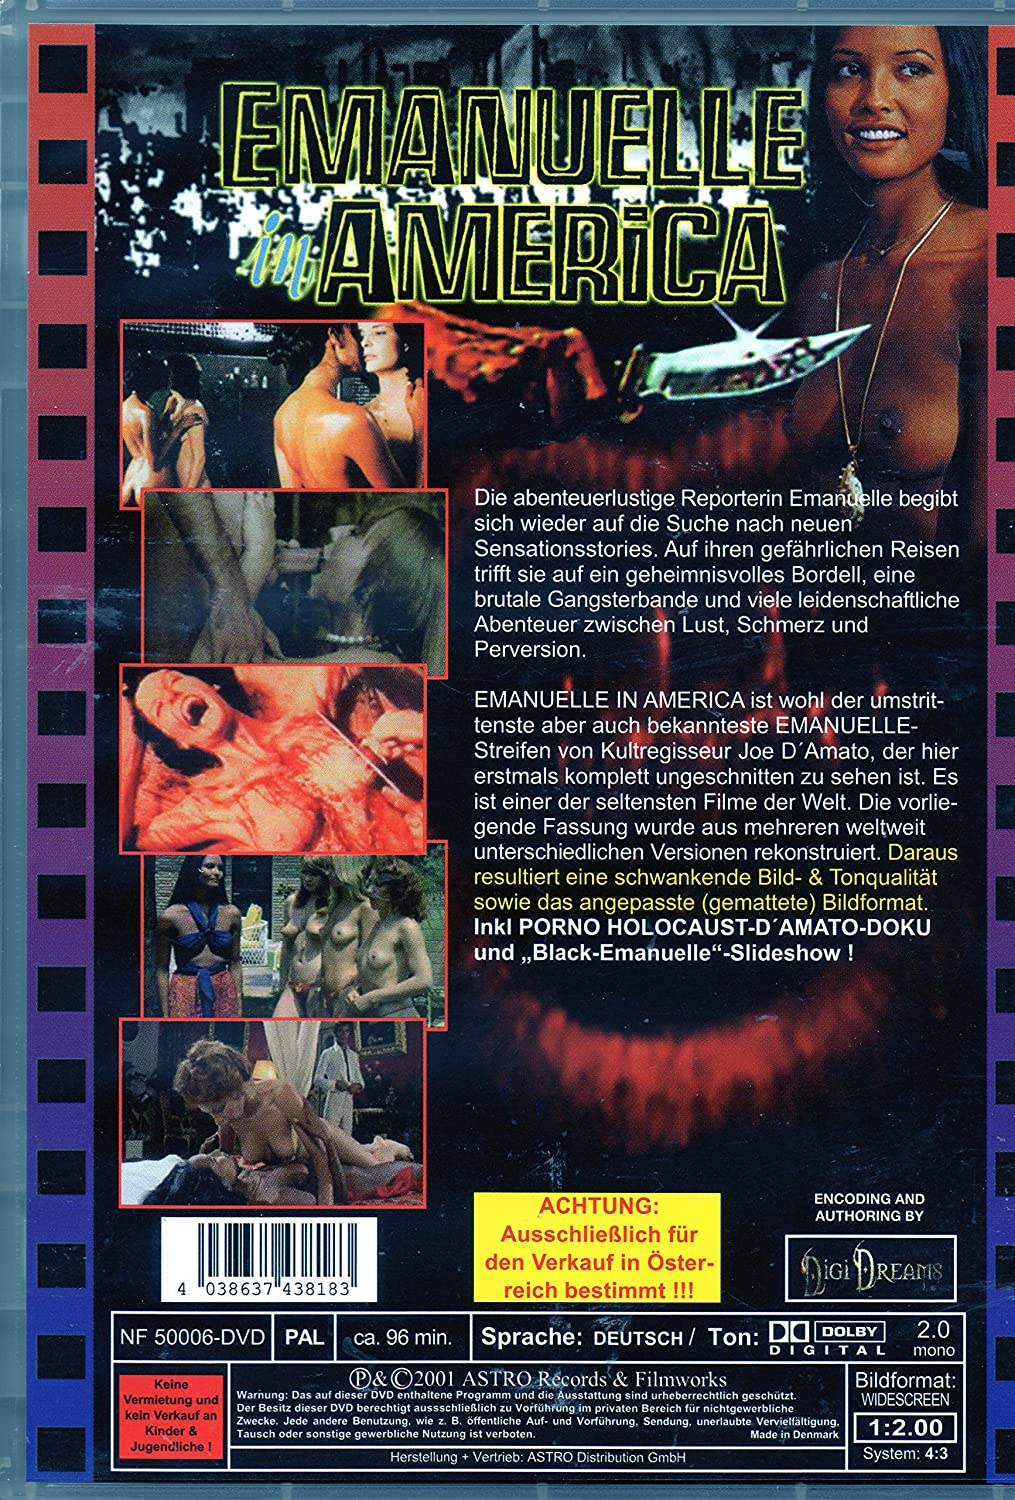 Emanuelle In America (German Language Only): Amazon.co.uk: DVD & Blu-ray